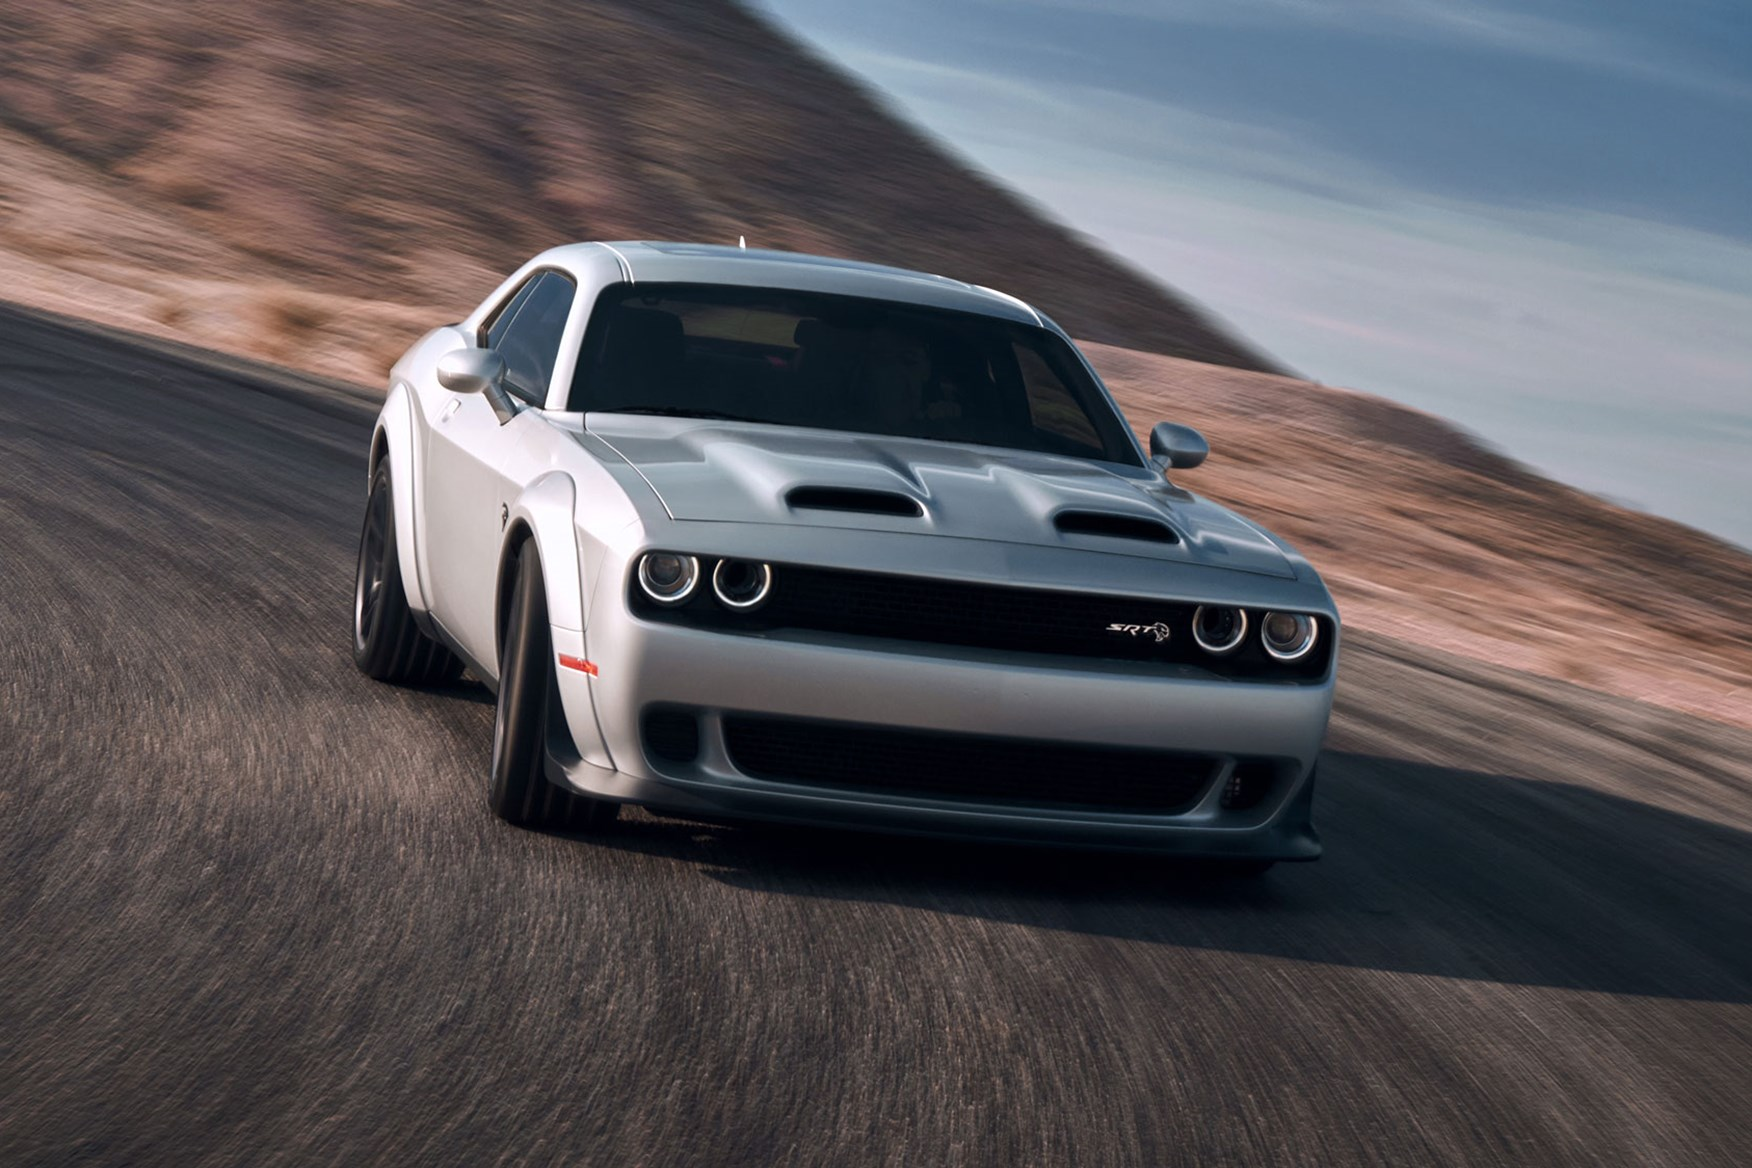 Meet The 2019 Dodge Challenger Srt Hellcat Redeye Widebody Car Magazine